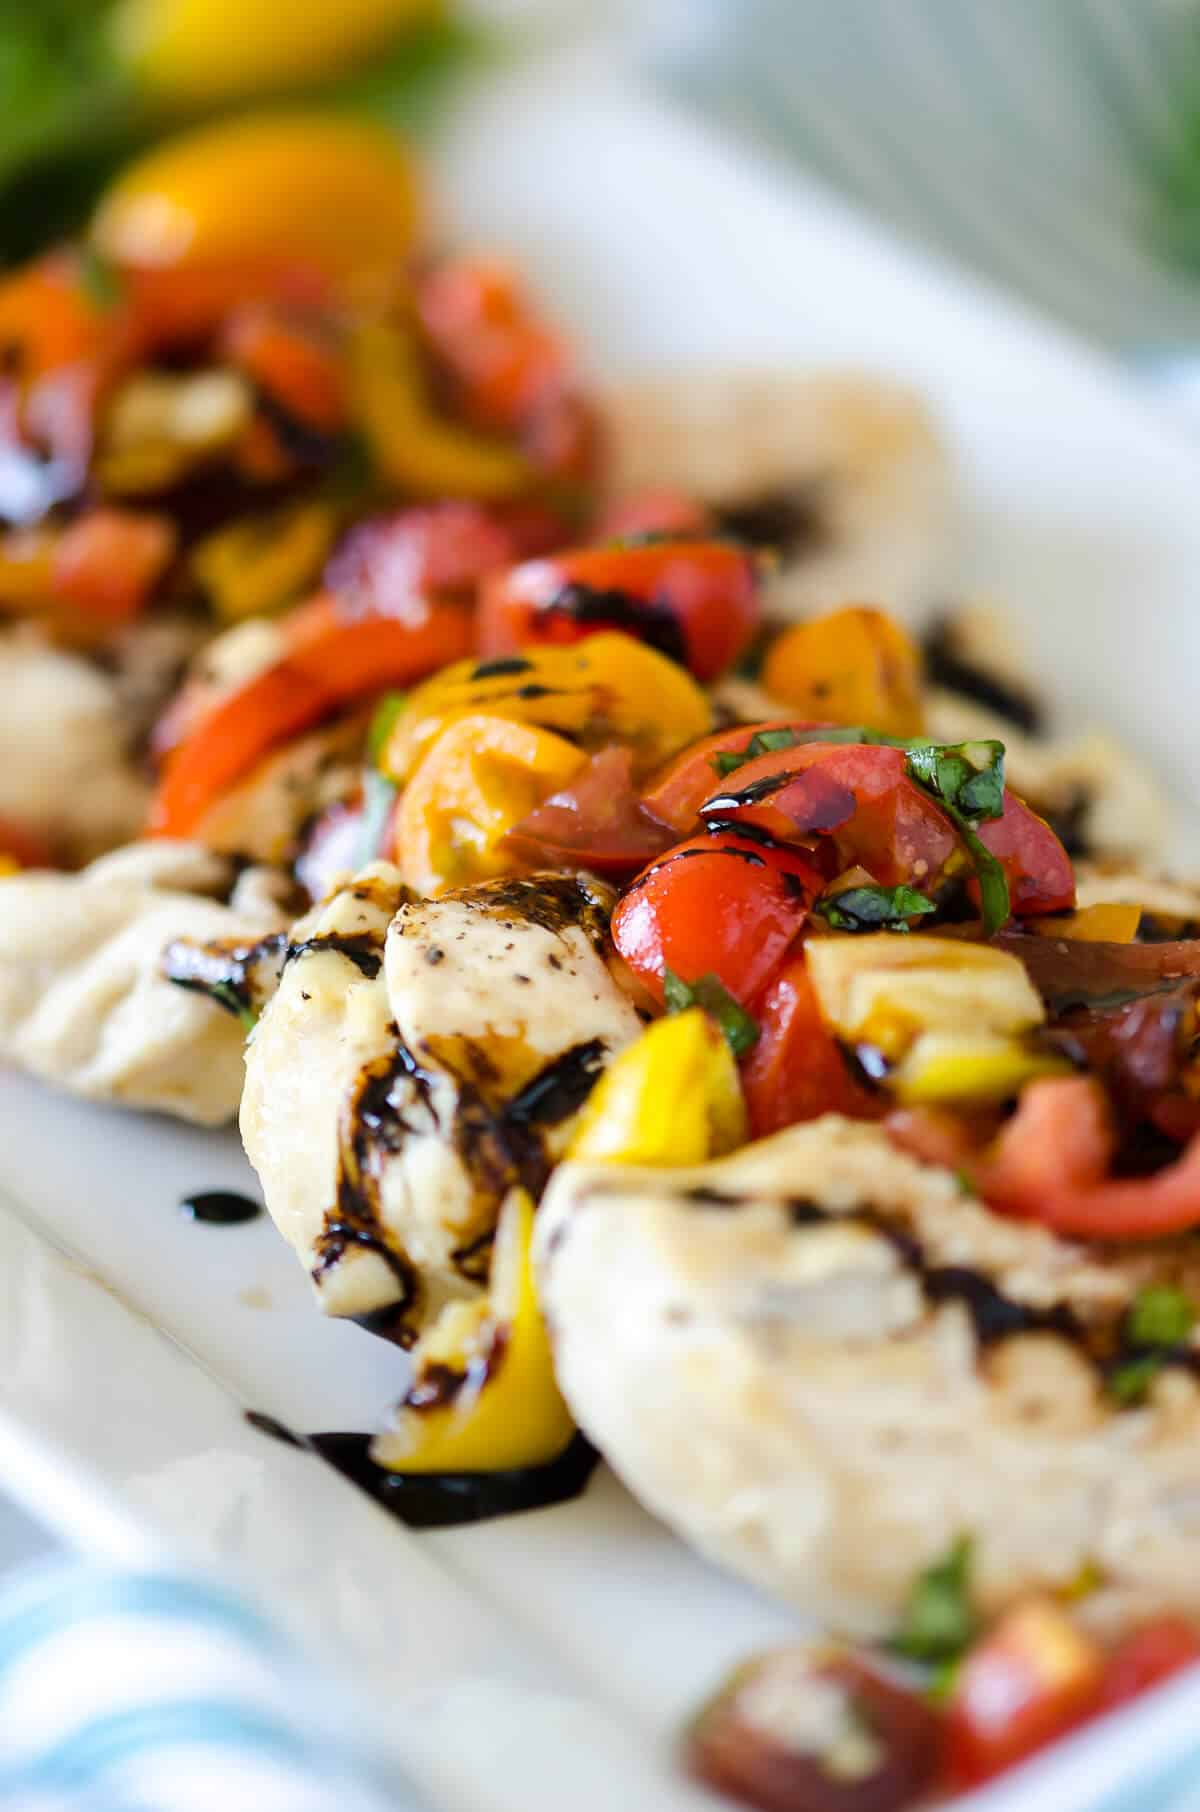 Chicken breasts topped with red, orange and yellow tomatoes and fresh basil marinated in olive oil and balsamic vinegar